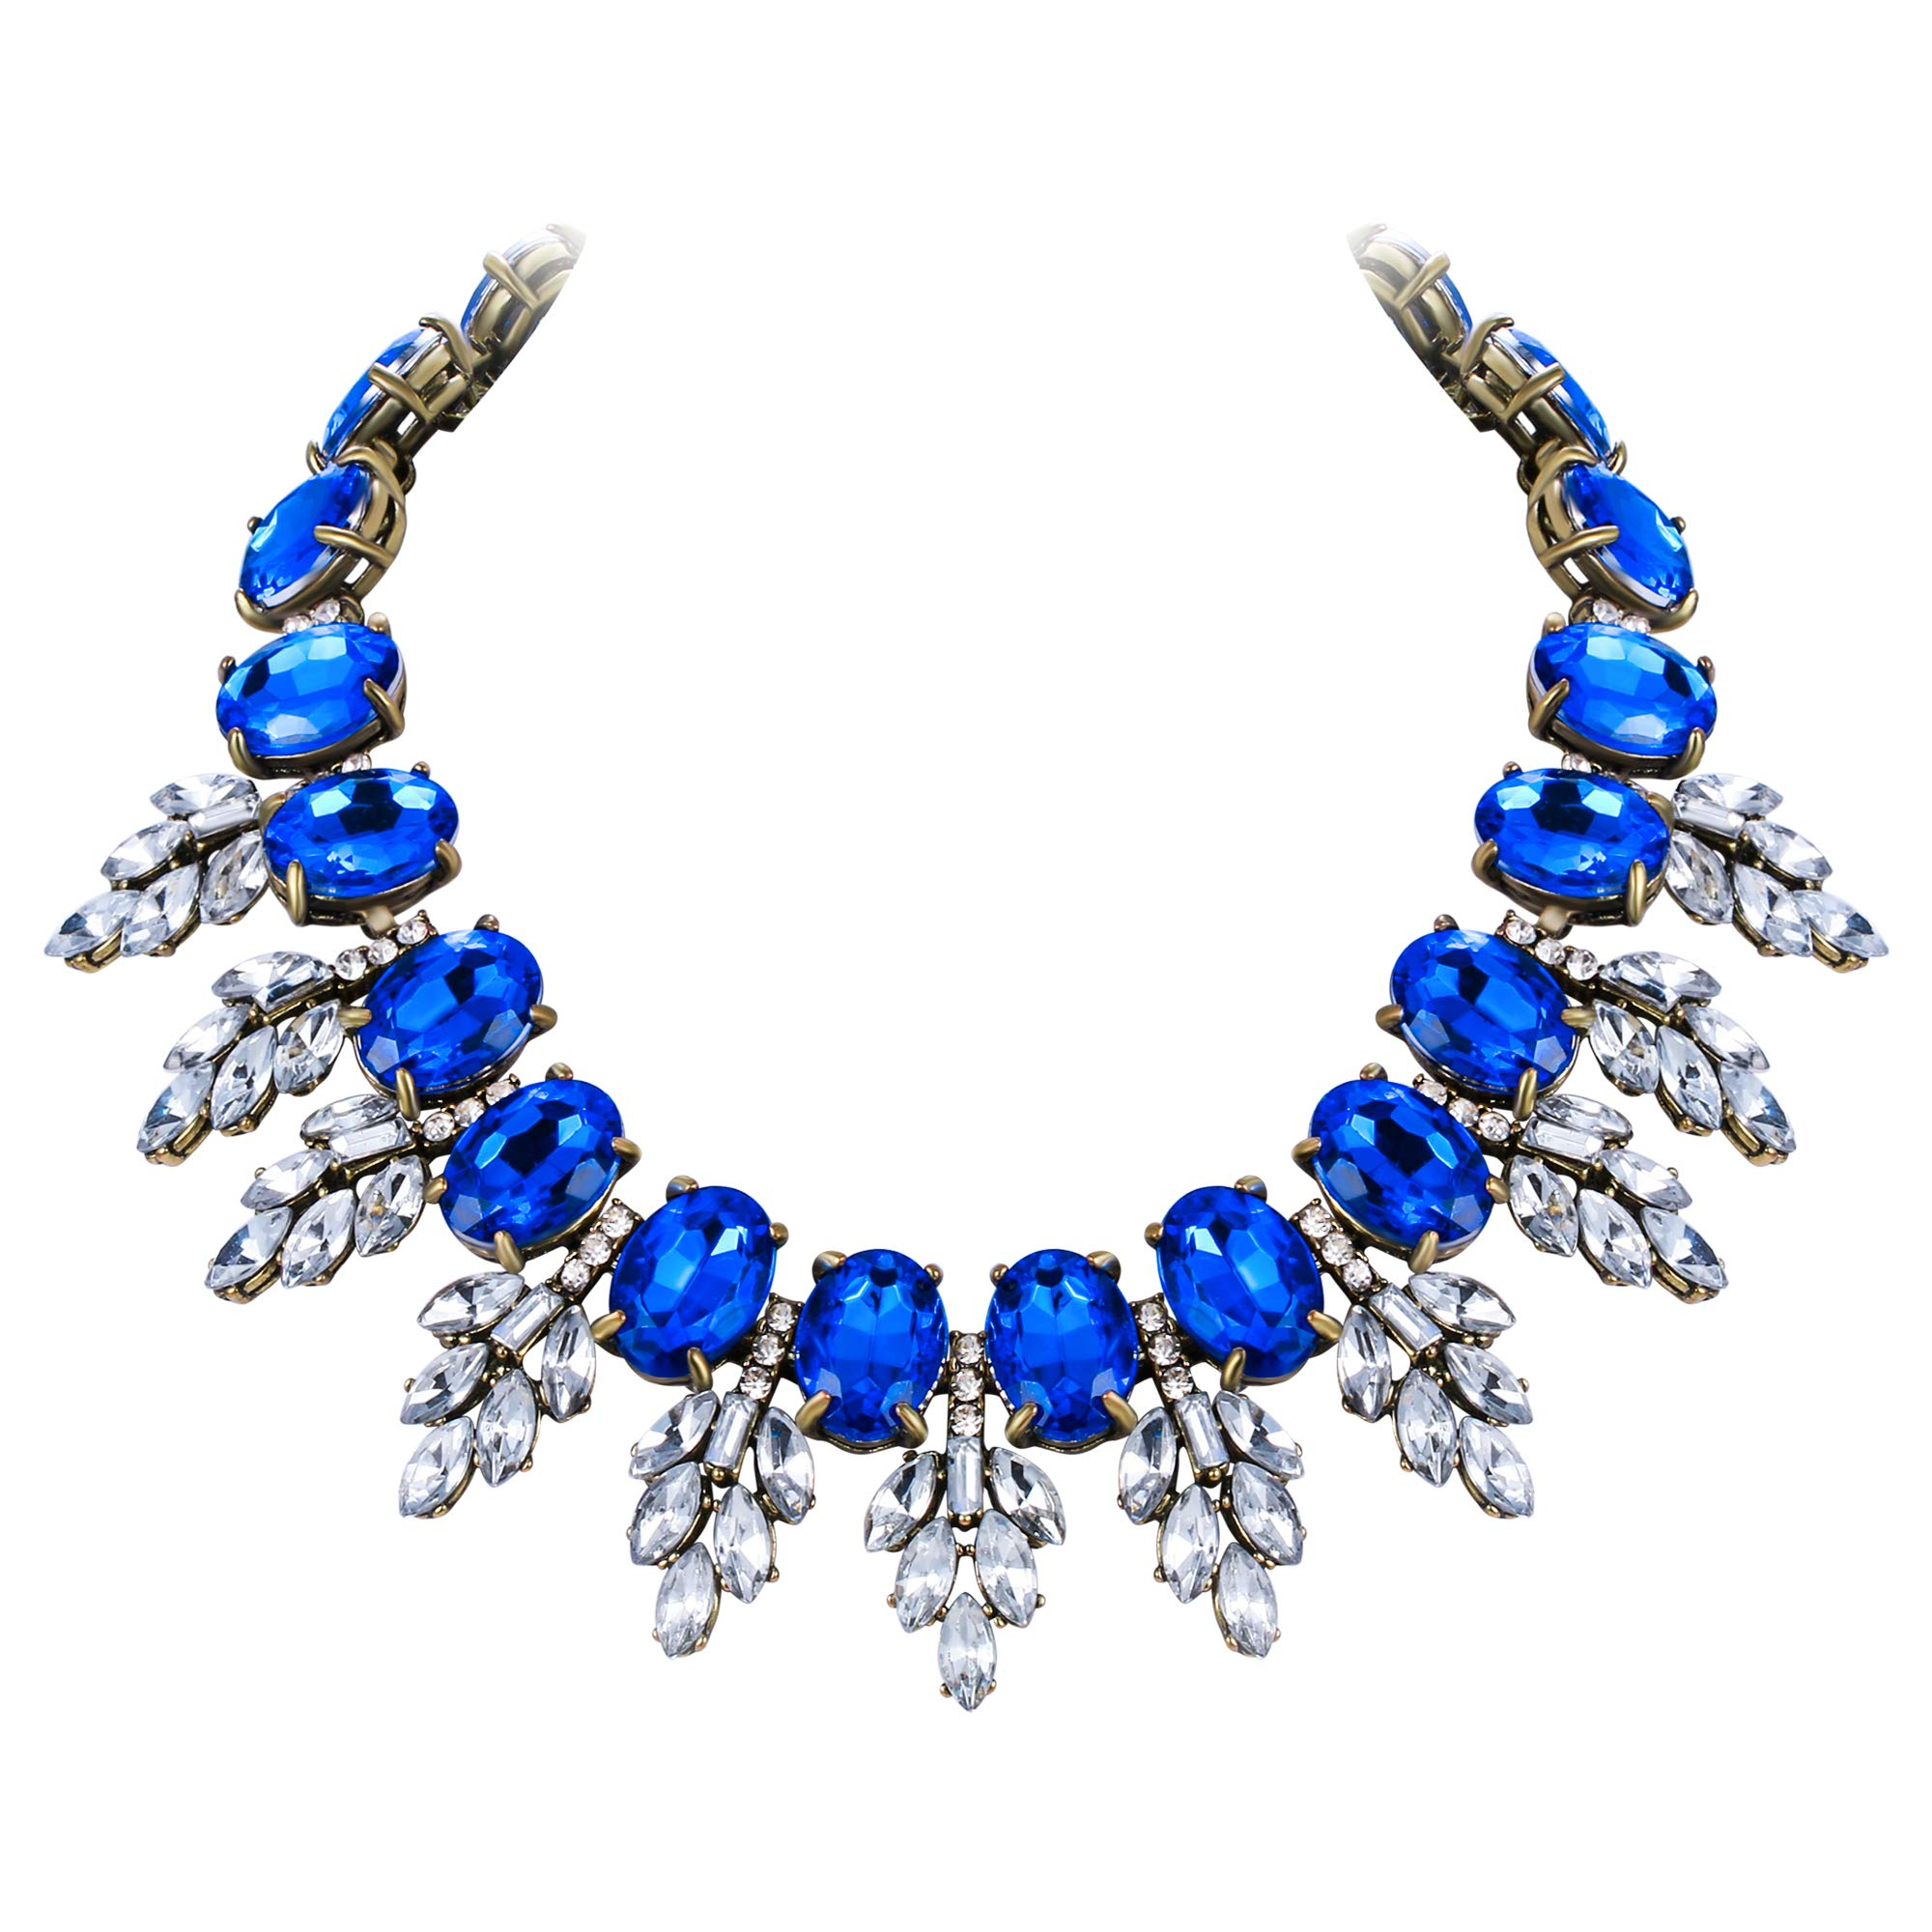 Flyonce Rhinestone Crystal Choker Statement Chunky Necklace for Women, Oval Drop Leaf Costume Jewelry